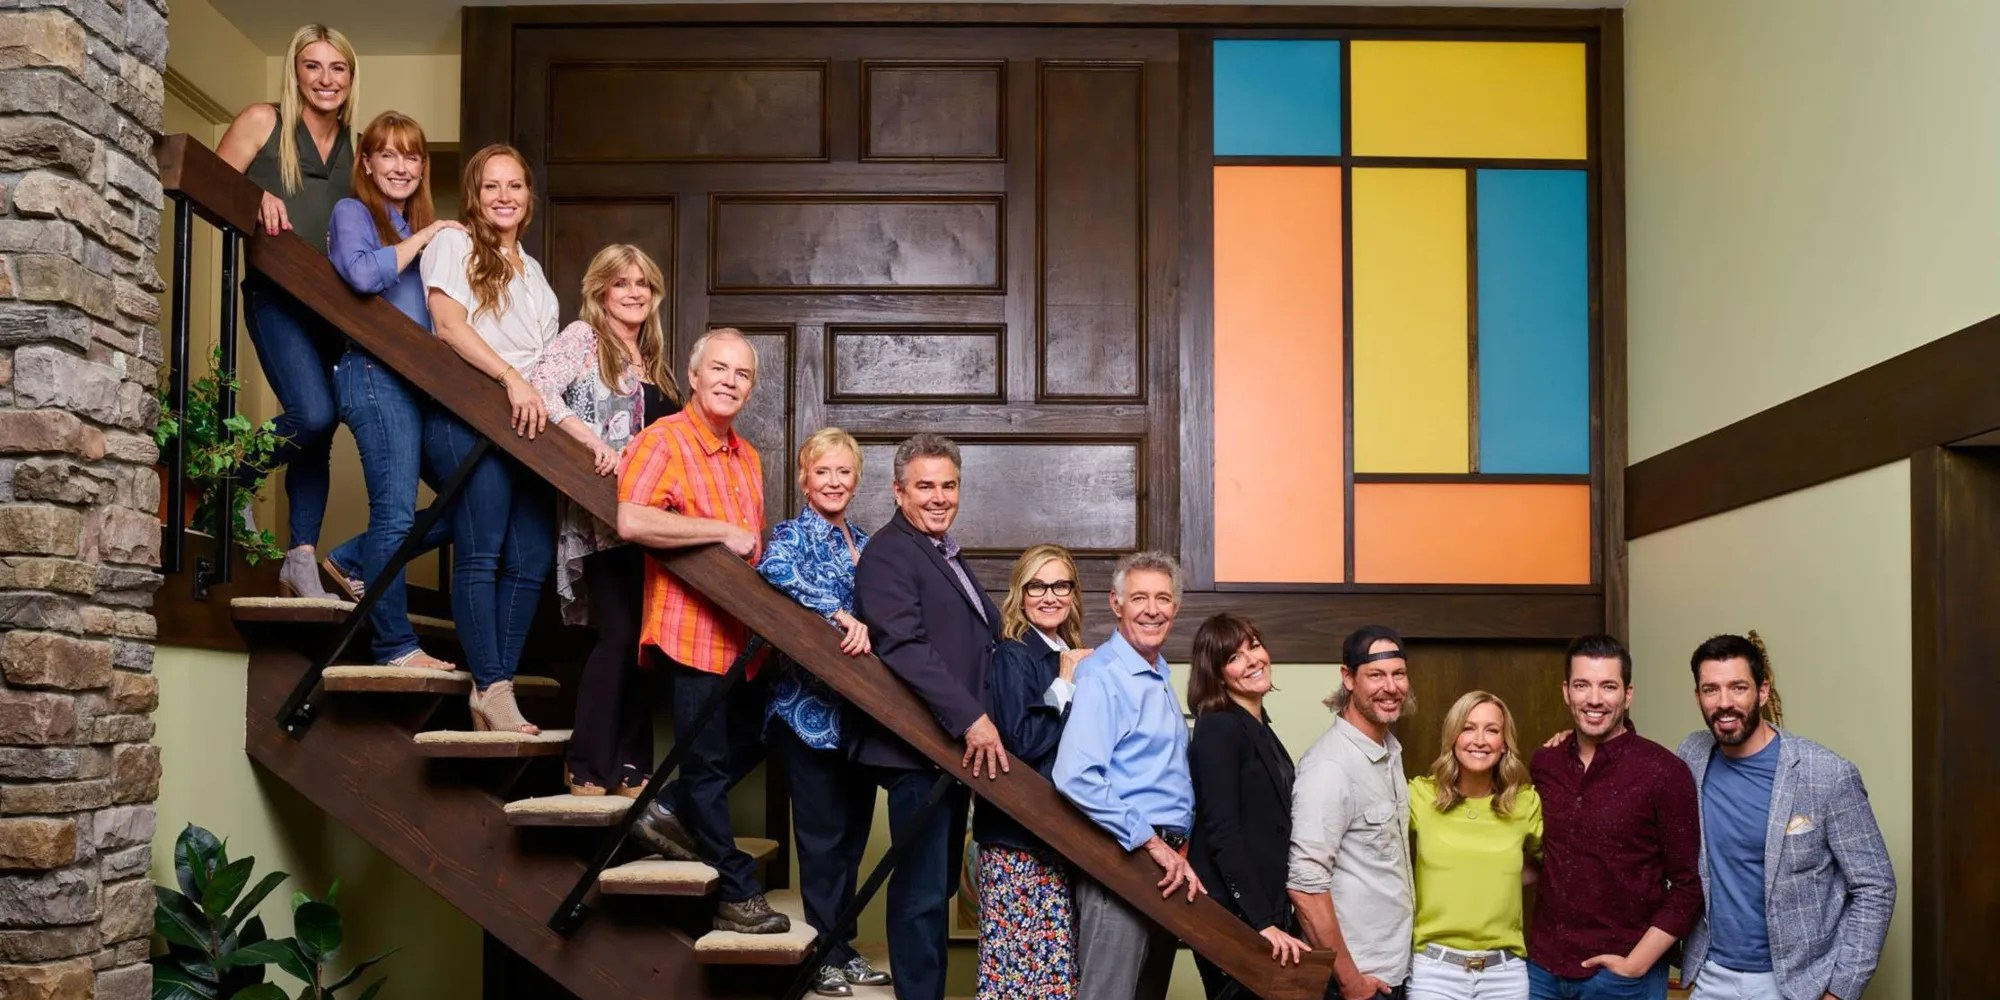 Brady Bunch House to be Replicated in Major HGTV Makeover